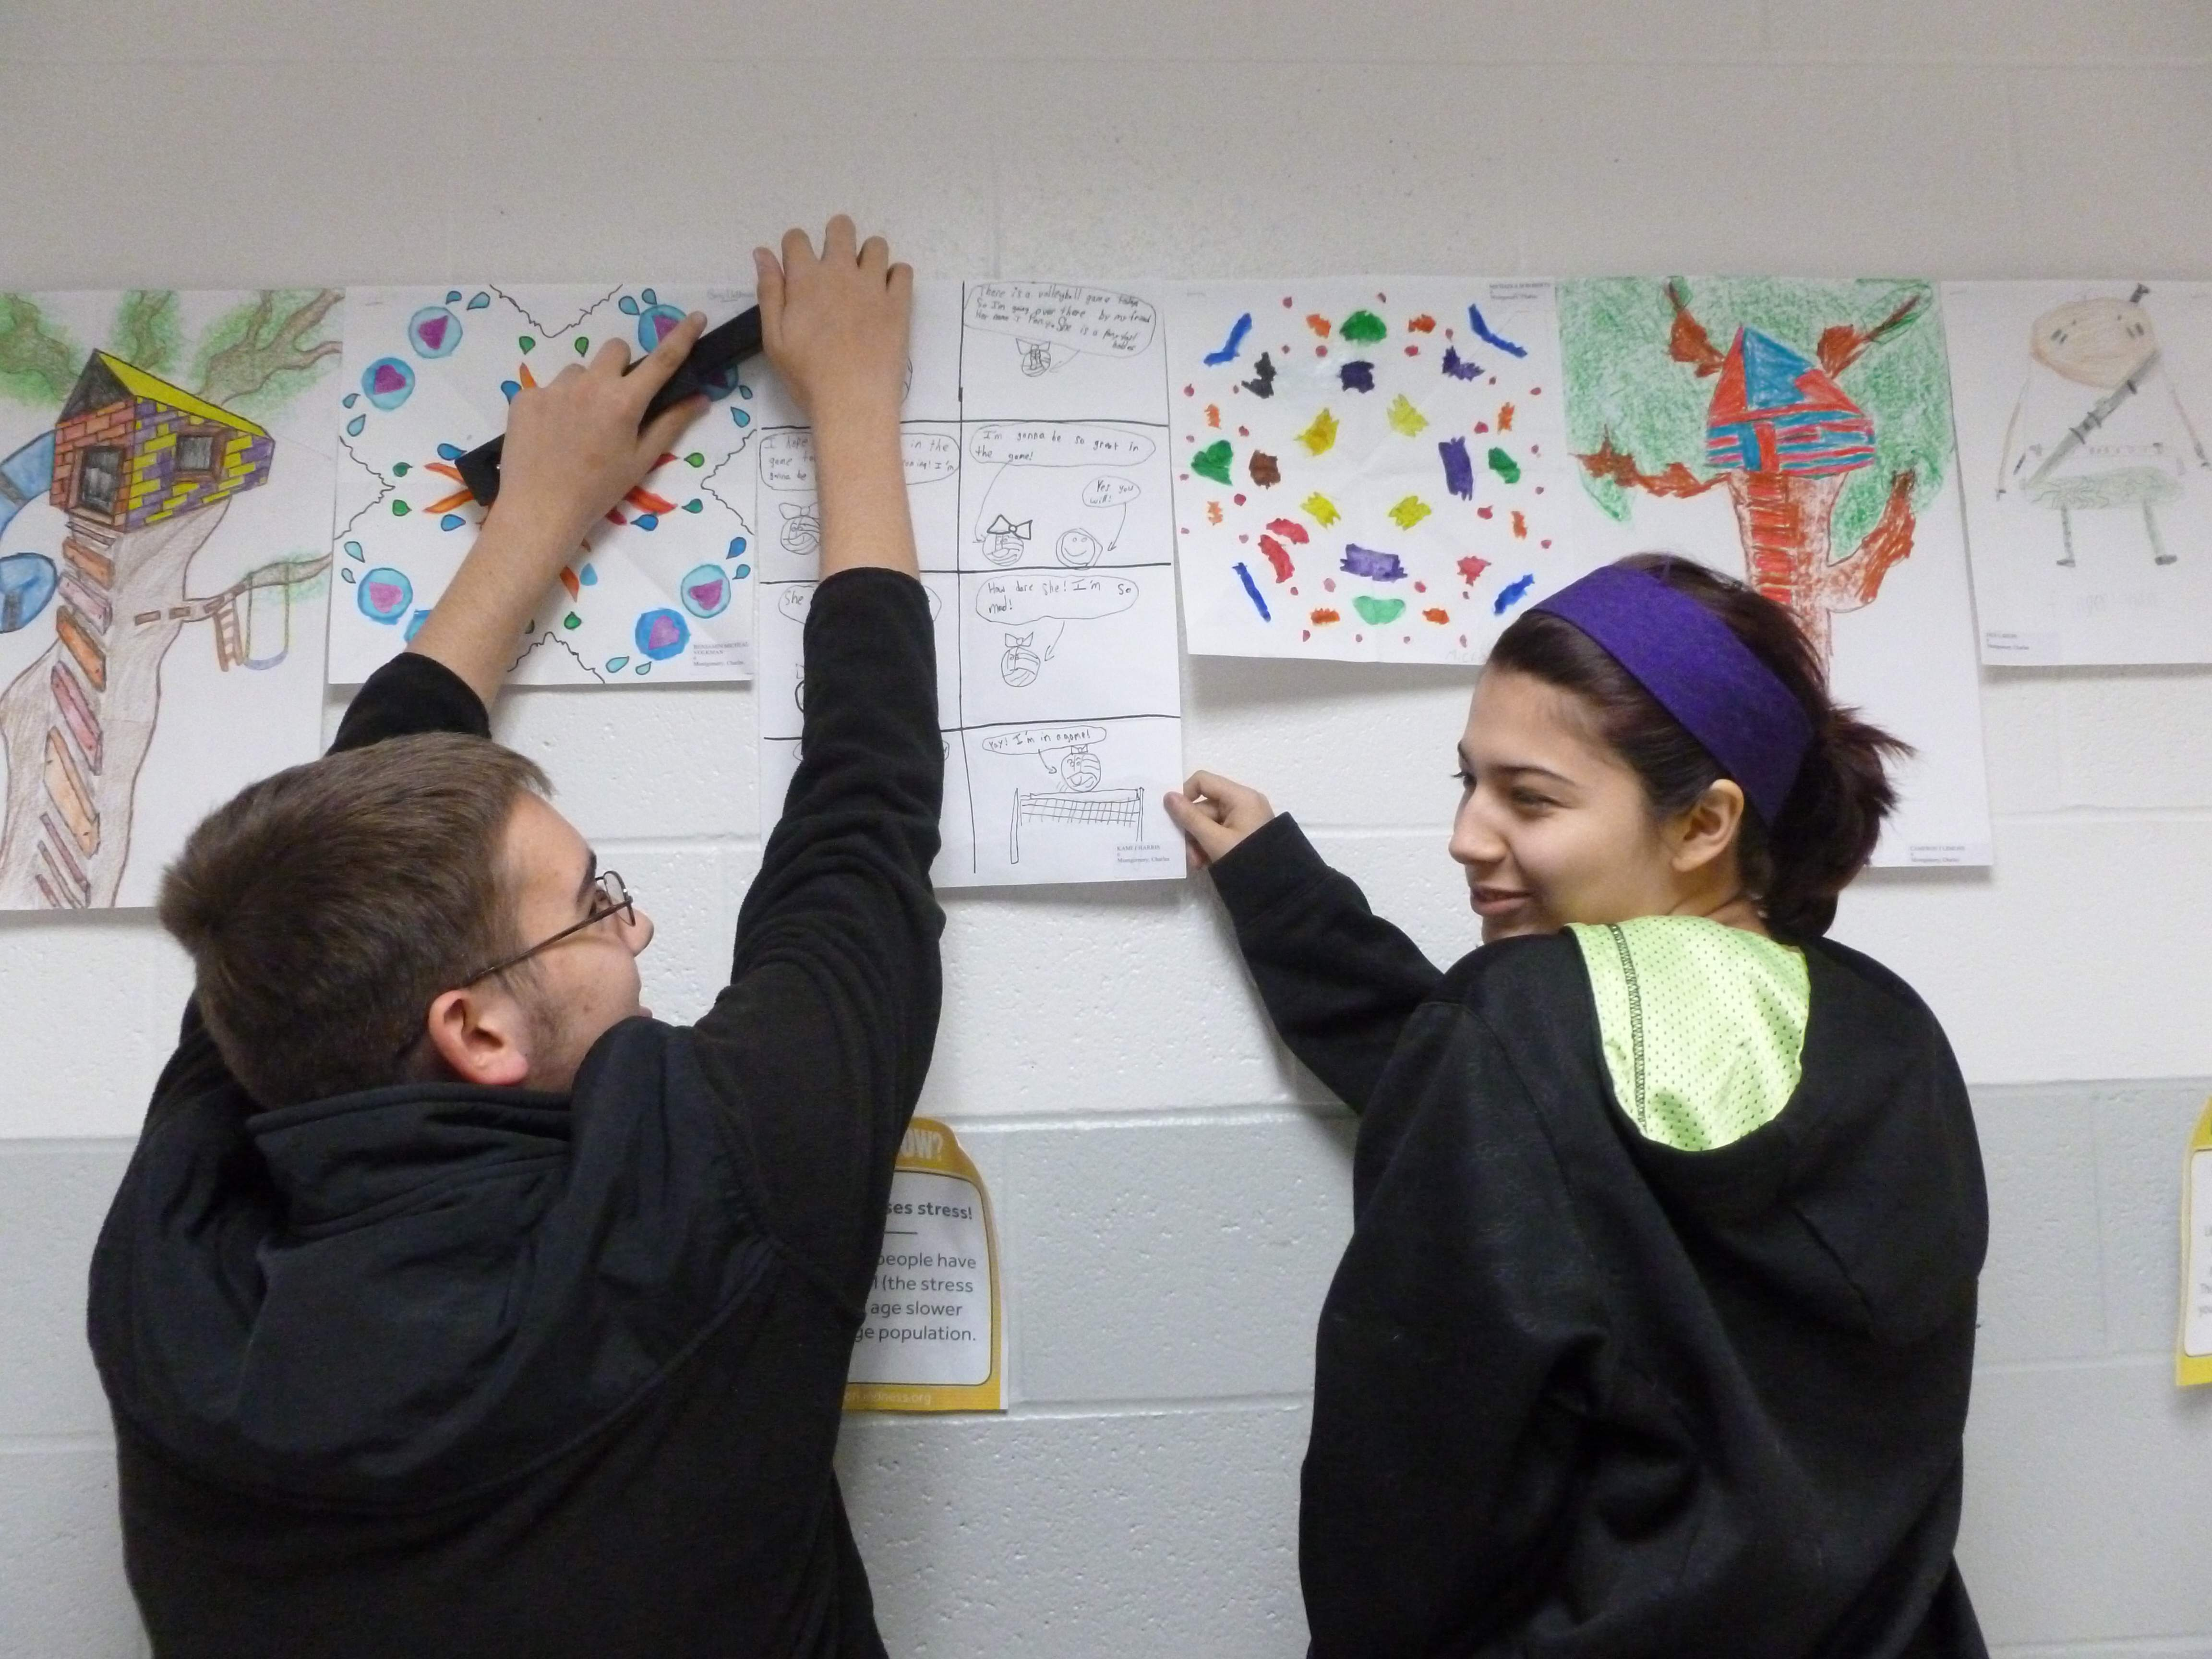 Students at Du Quoin Middle School are hanging art around the school in preparation for the upcoming All-Student Art Show, which will be held from 5:30 to 7 p.m. Thursday, April 20 at the school. The evening will include the exhibition of more than 1,000 pieces of student-produced art, as well as face-painting, DJ Christian Feltmeyer, refreshments, a photo booth and coloring page stations. The free event will be hosted by middle school art teacher Candace Campanella and elementary/high school art teacher Andrea Collins.